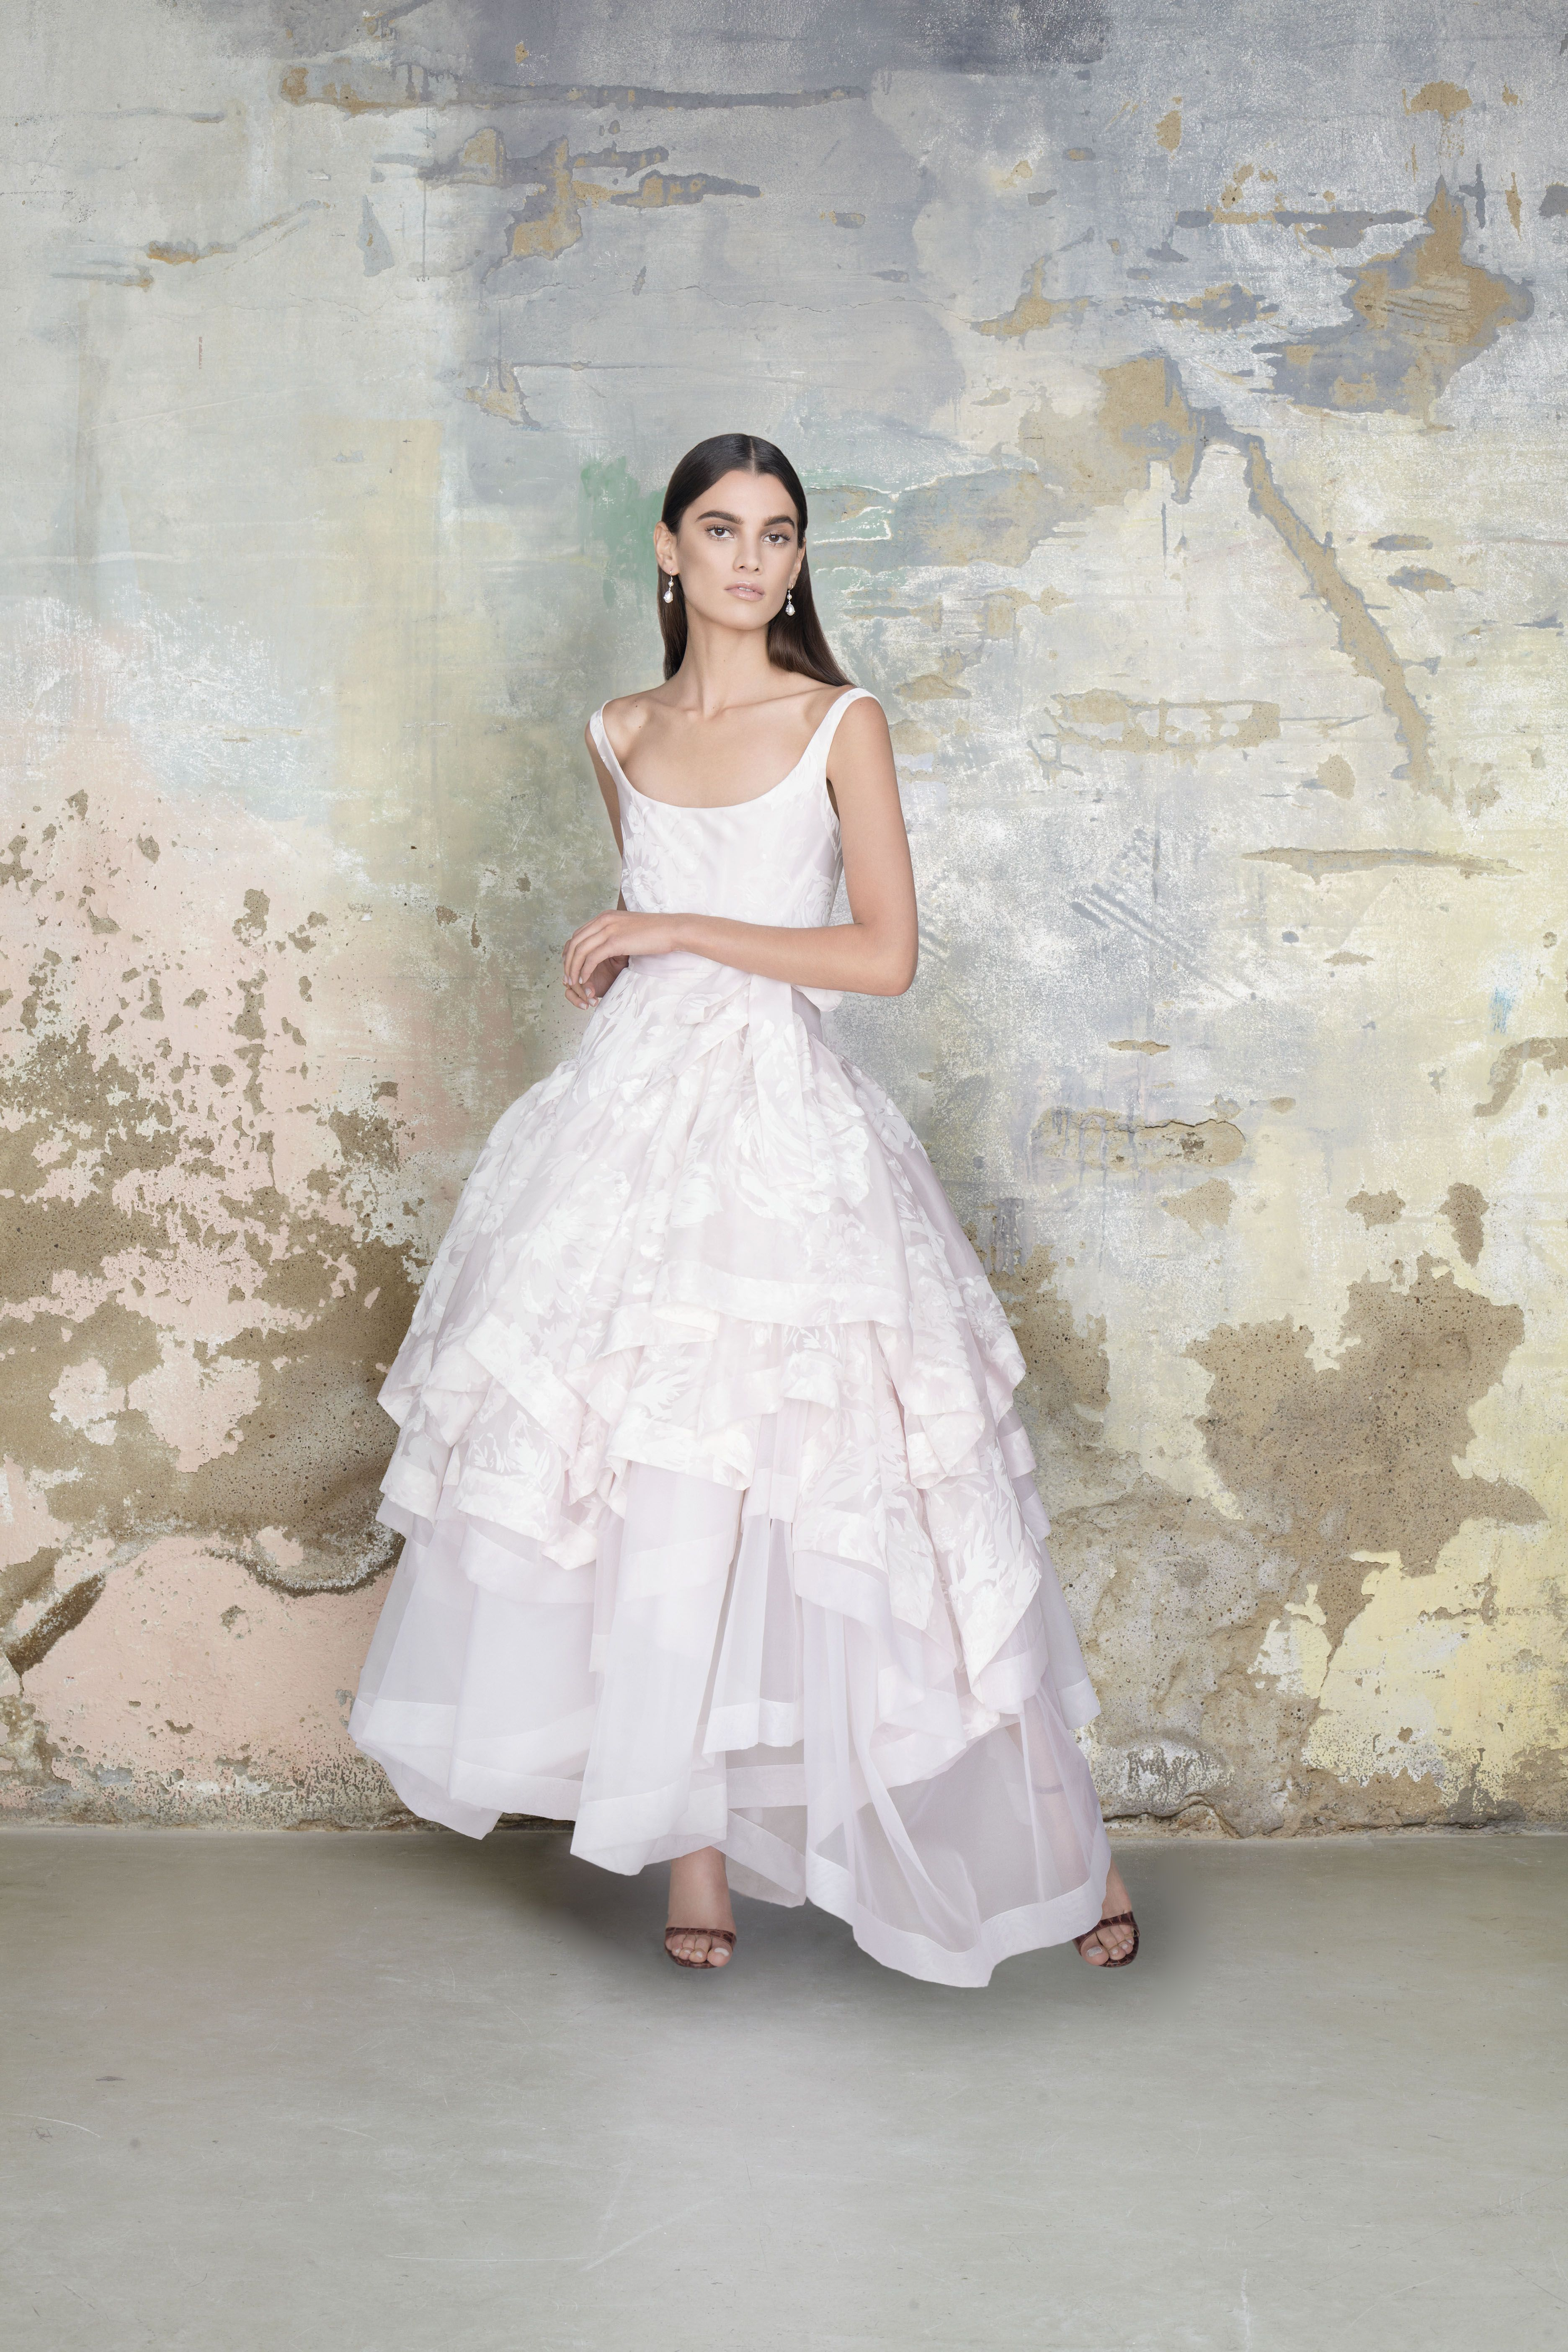 Embody A Ballerina Bride On Your Wedding Day In The Vivienne Westwood Couture Princess Dress